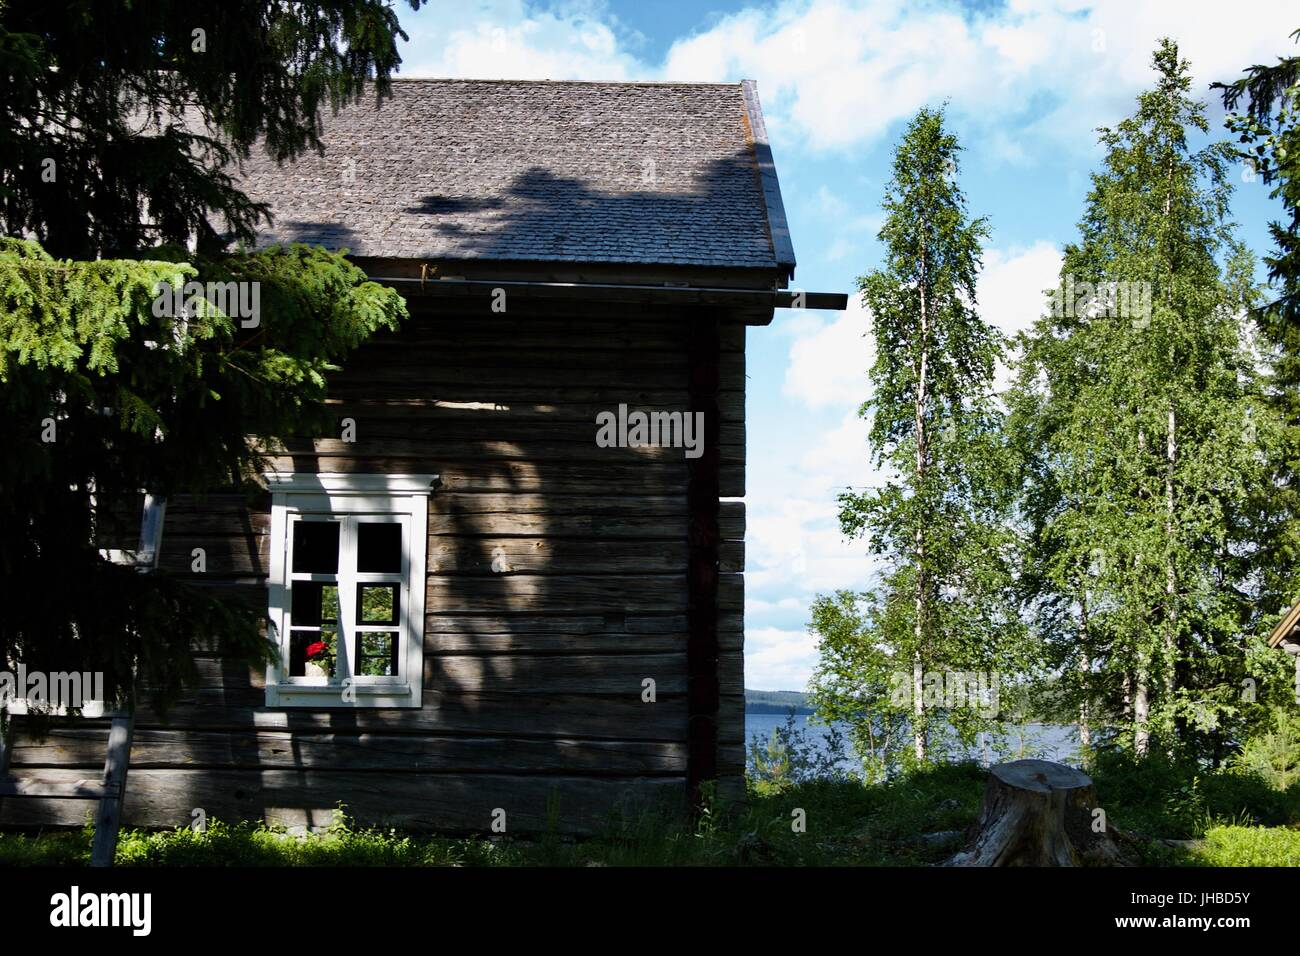 Old Finnish farm house in Lapland. - Stock Image